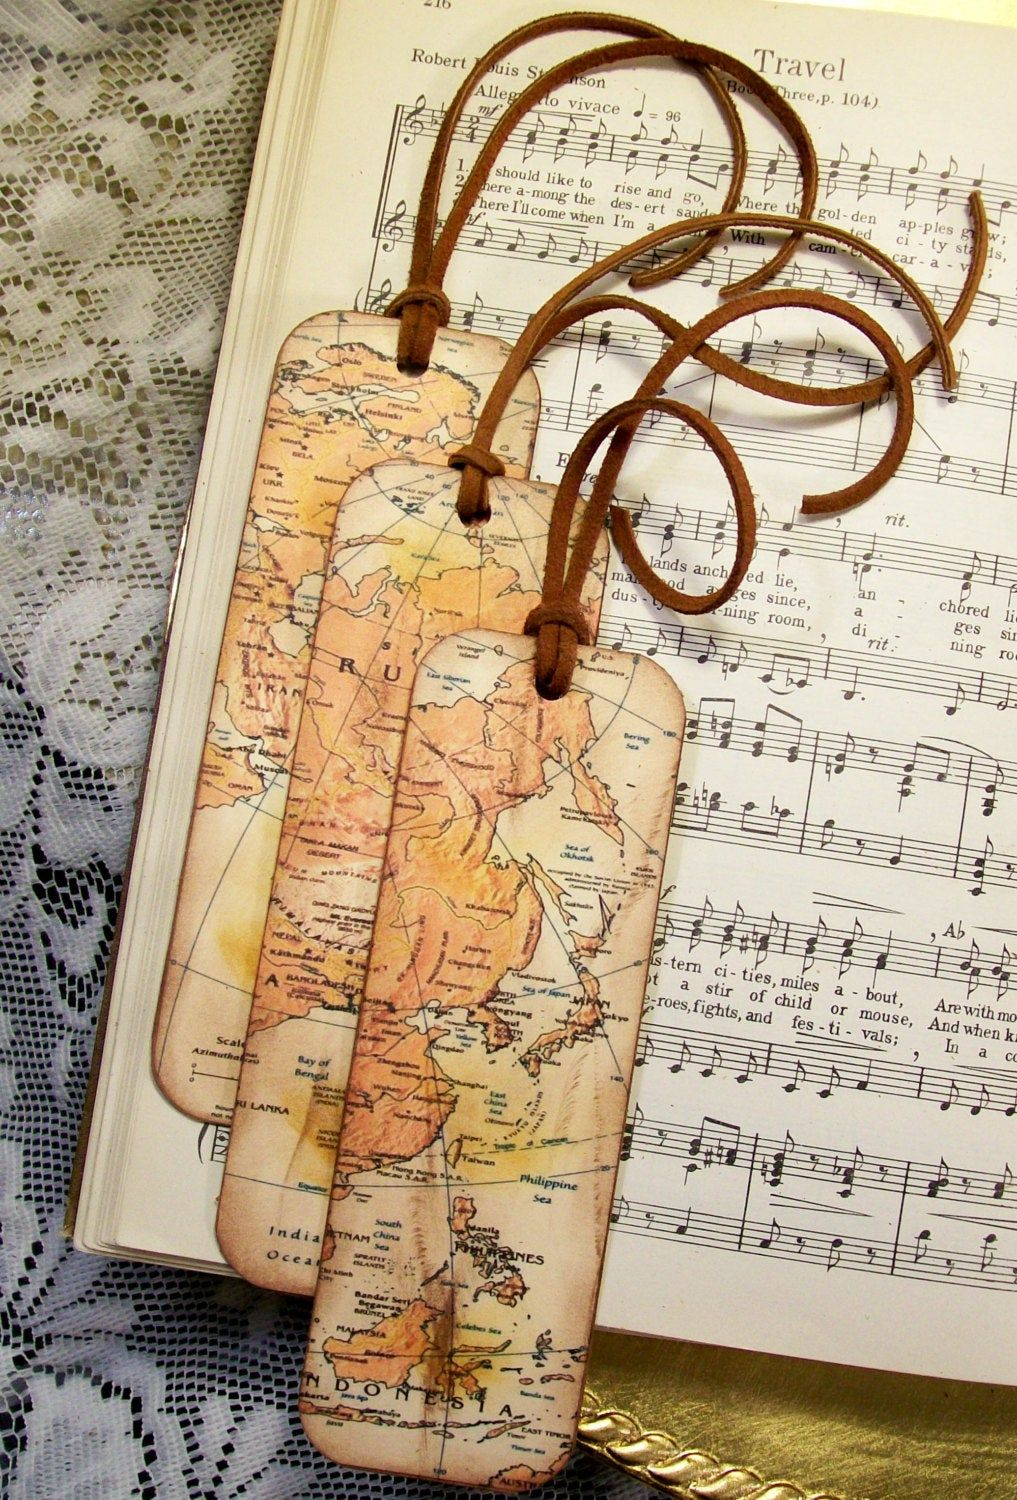 Russia China India Indonesia Map Bookmarks Set of 3 Gifts